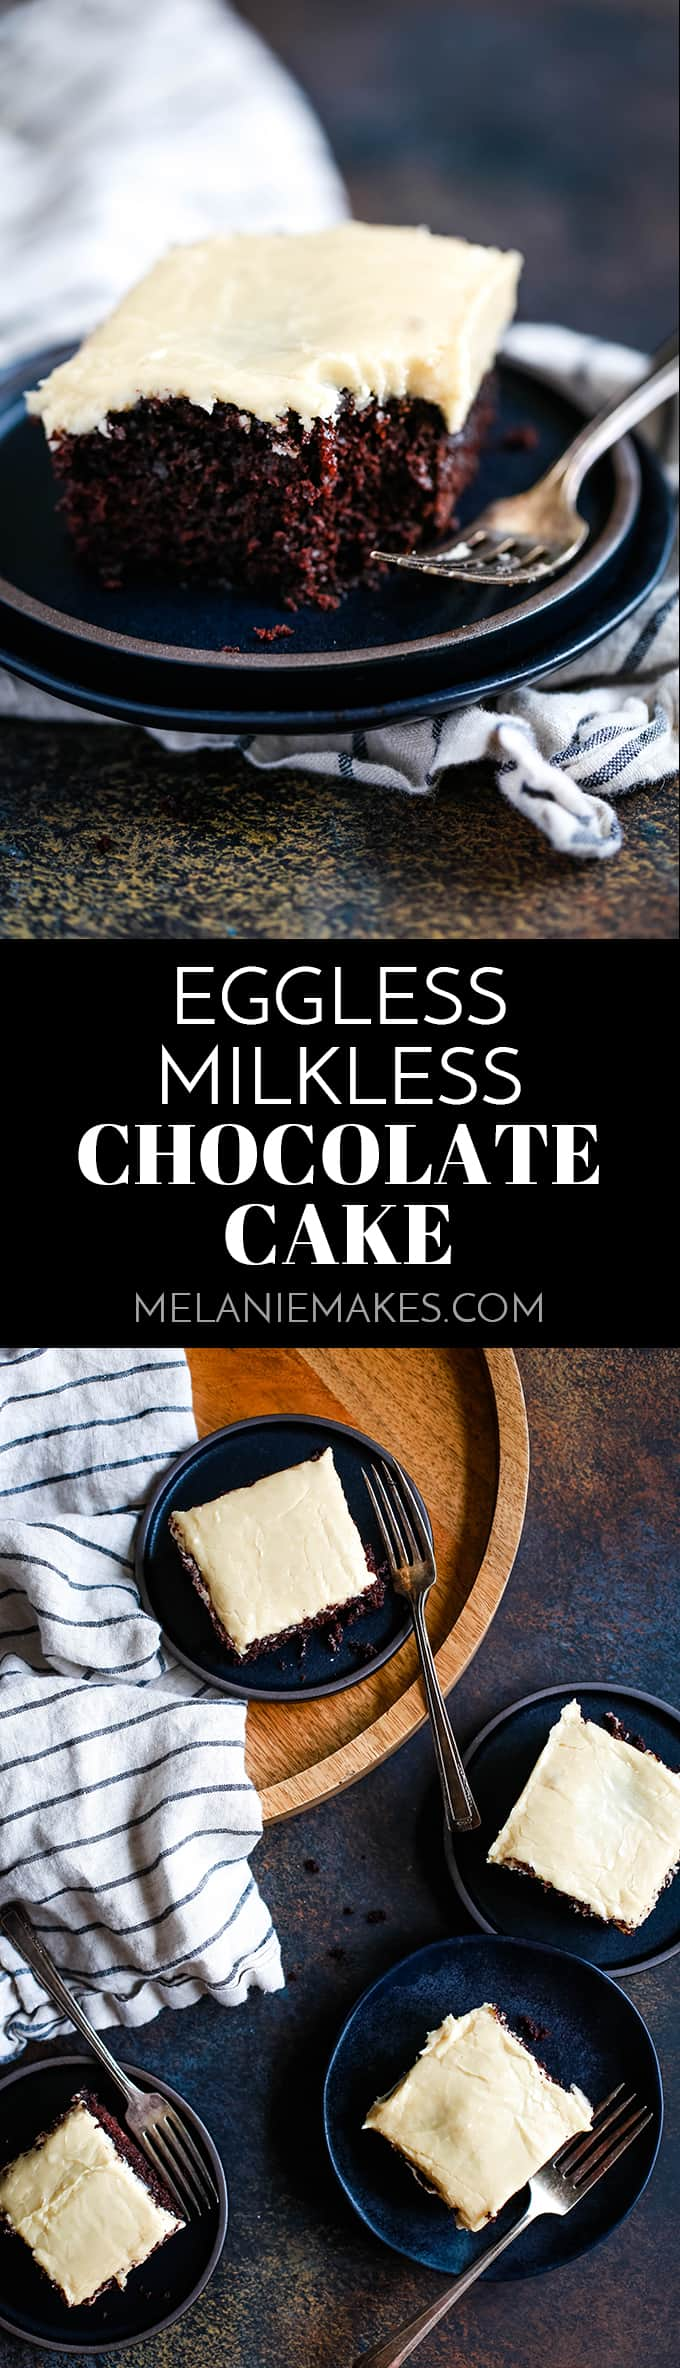 ThisEggless Milkless Chocolate Cake contains no milk or eggs yet is absolutely decadent. Perfect for any day or celebration and for those with allergies. #chocolate #chocolatecake #cake #eggless #dairyfree #easyrecipe